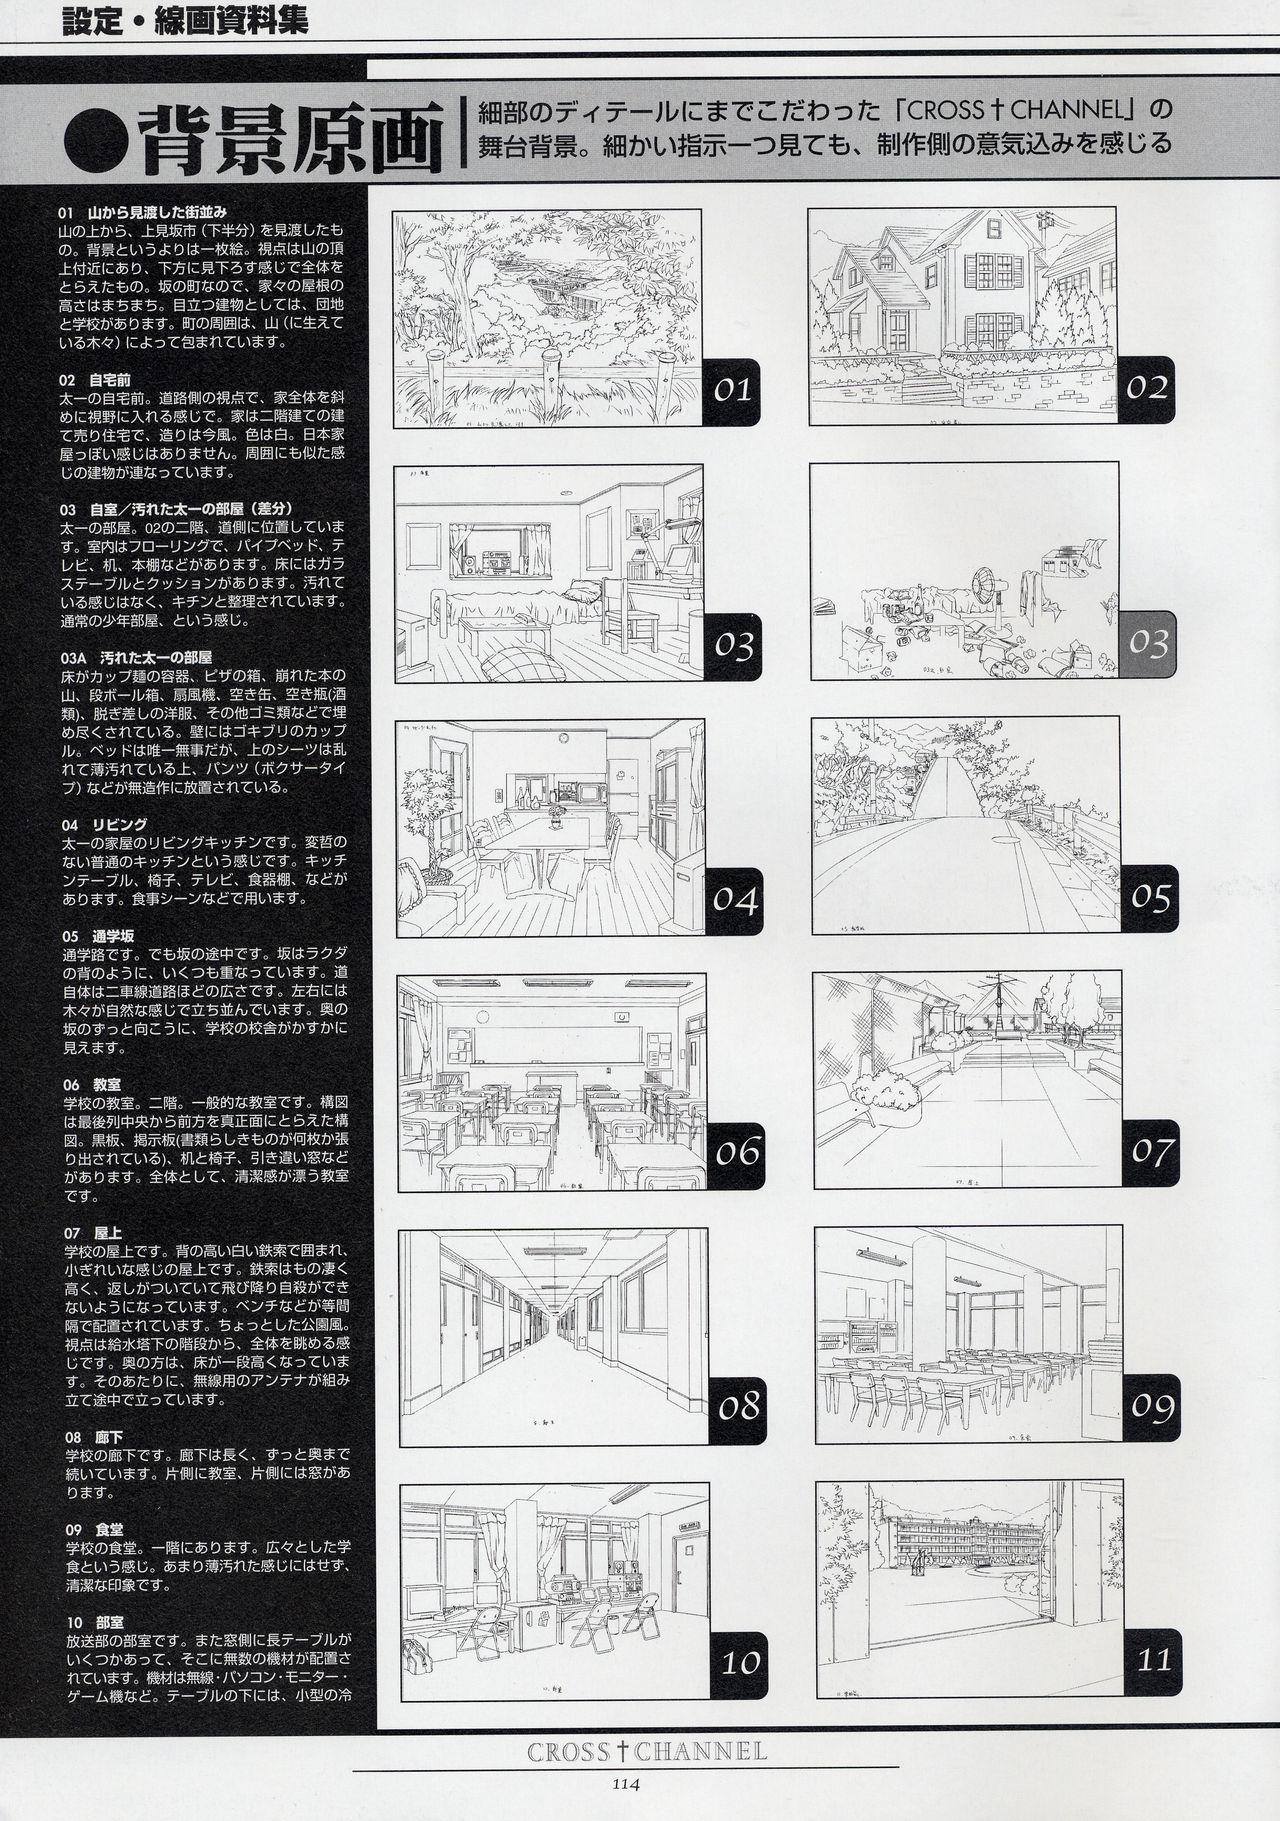 CROSS†CHANNEL Official Setting Materials 124